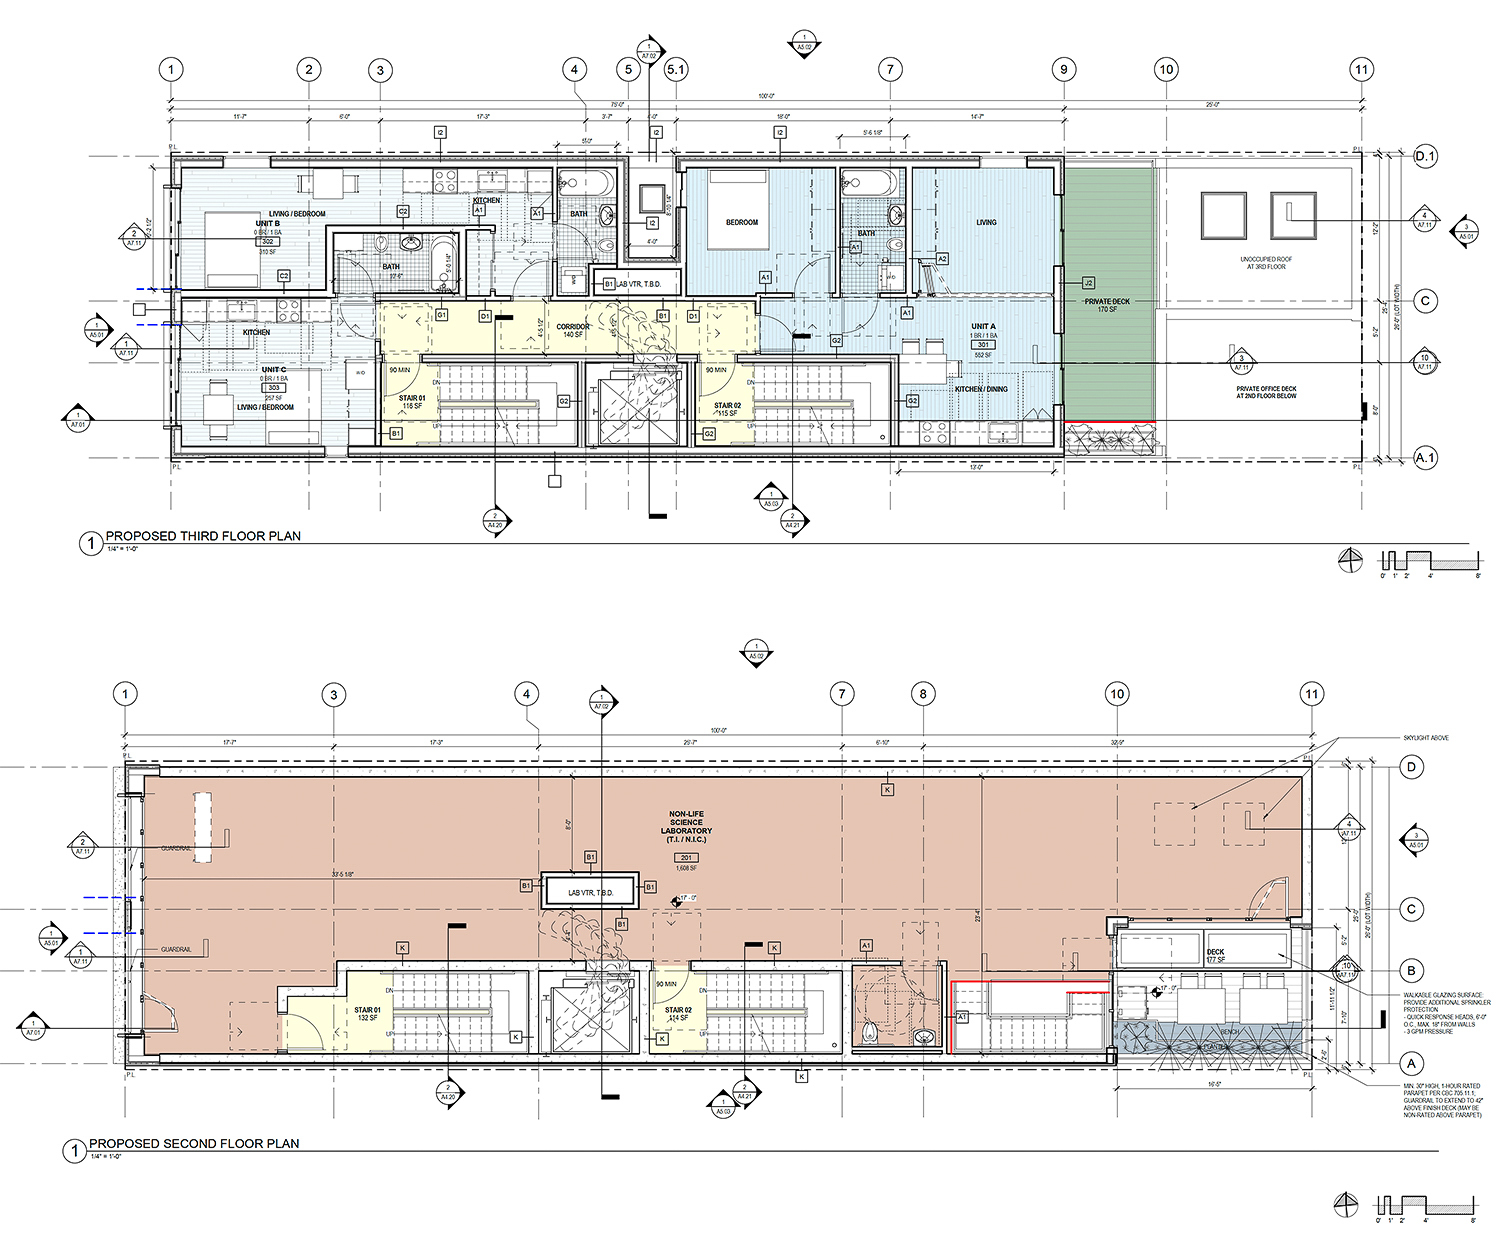 2455 Harrison Street second and third floor plan, elevation by Kerman Morris Architects